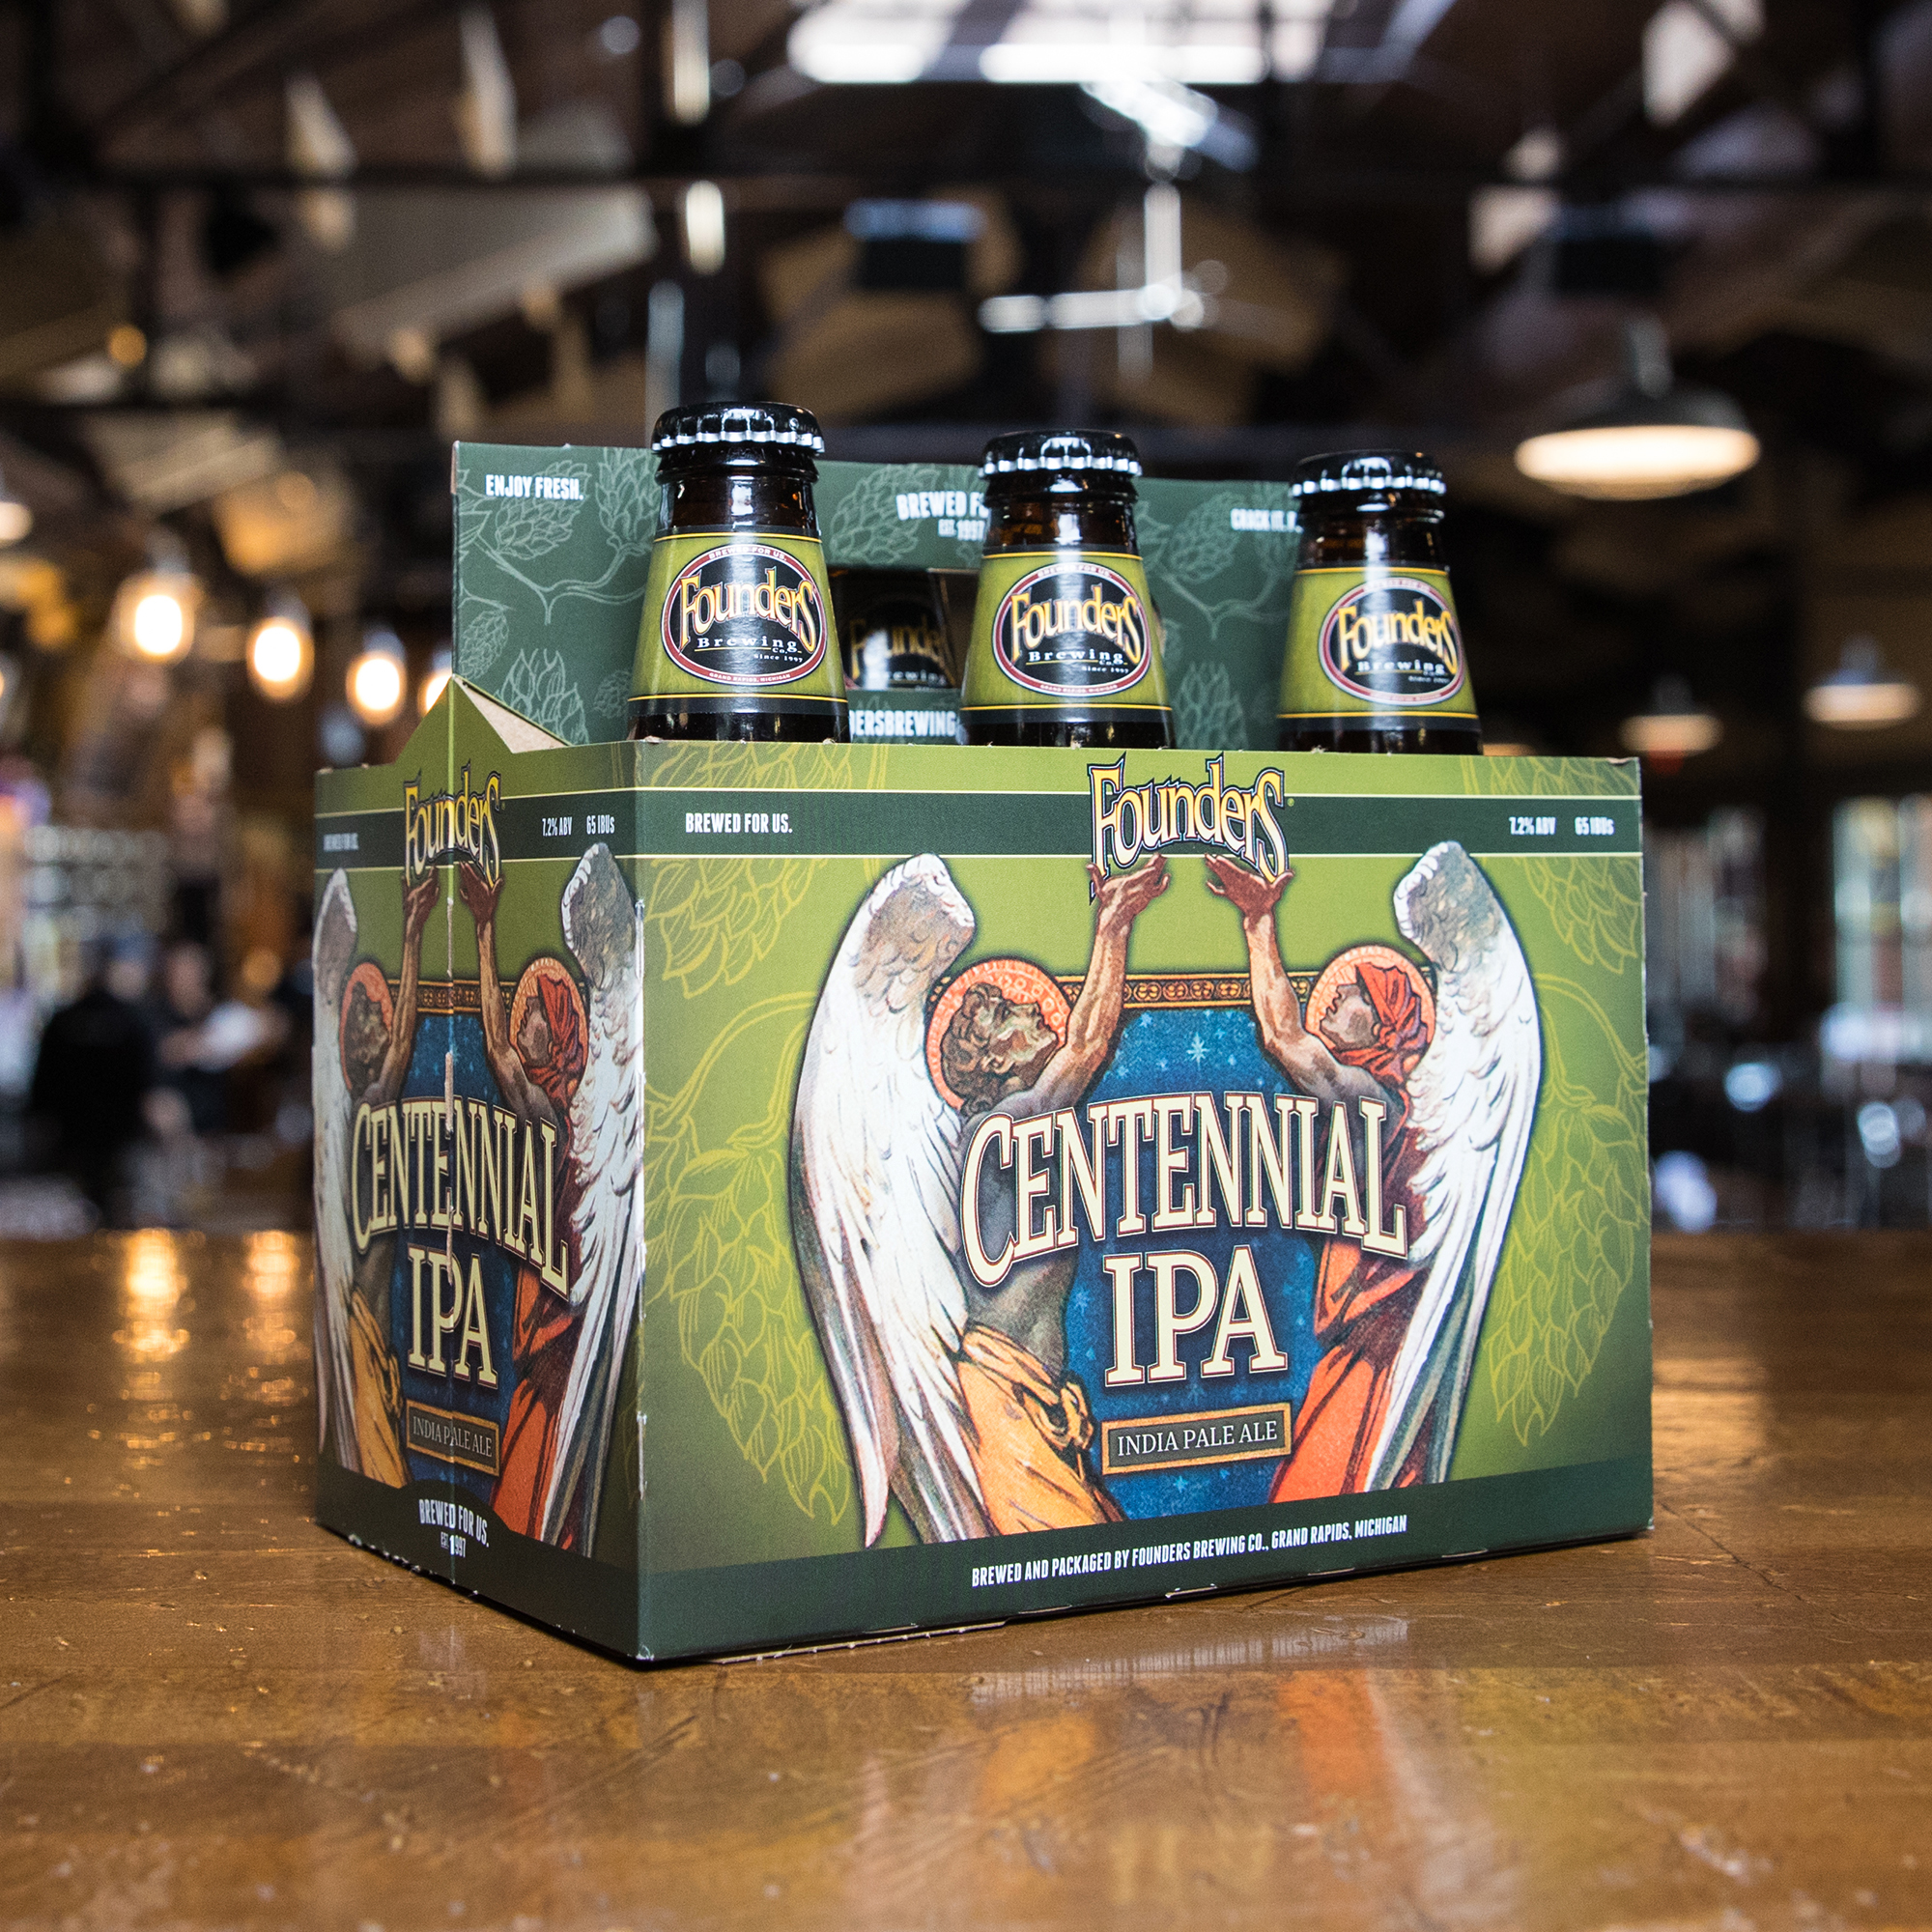 Founders 6 pack of Centennial IPA